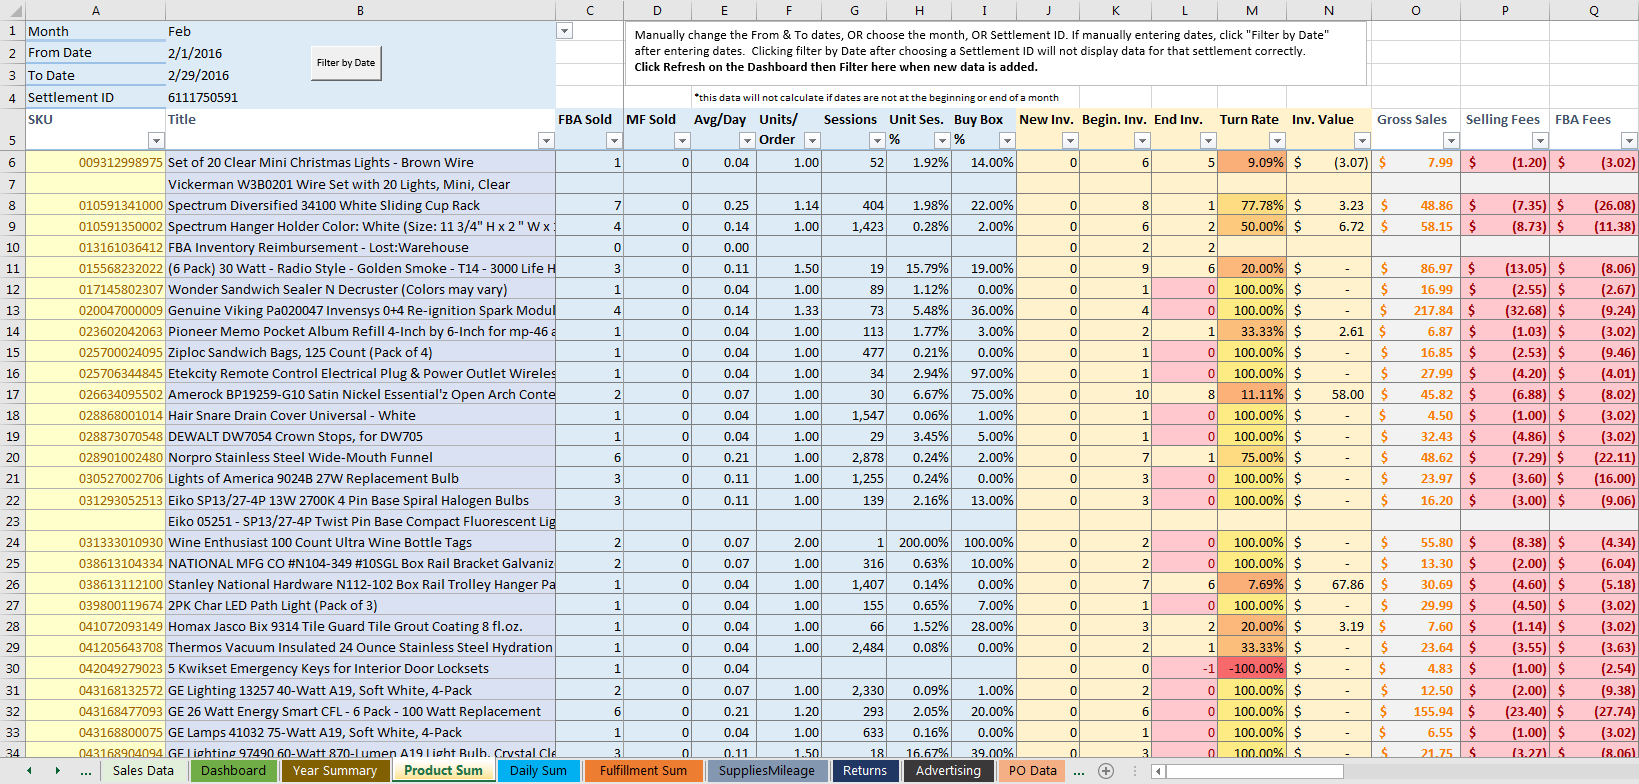 The Ultimate Amazon Fba Sales Spreadsheet V2 – Tools For Fba Inside Sales Spreadsheets